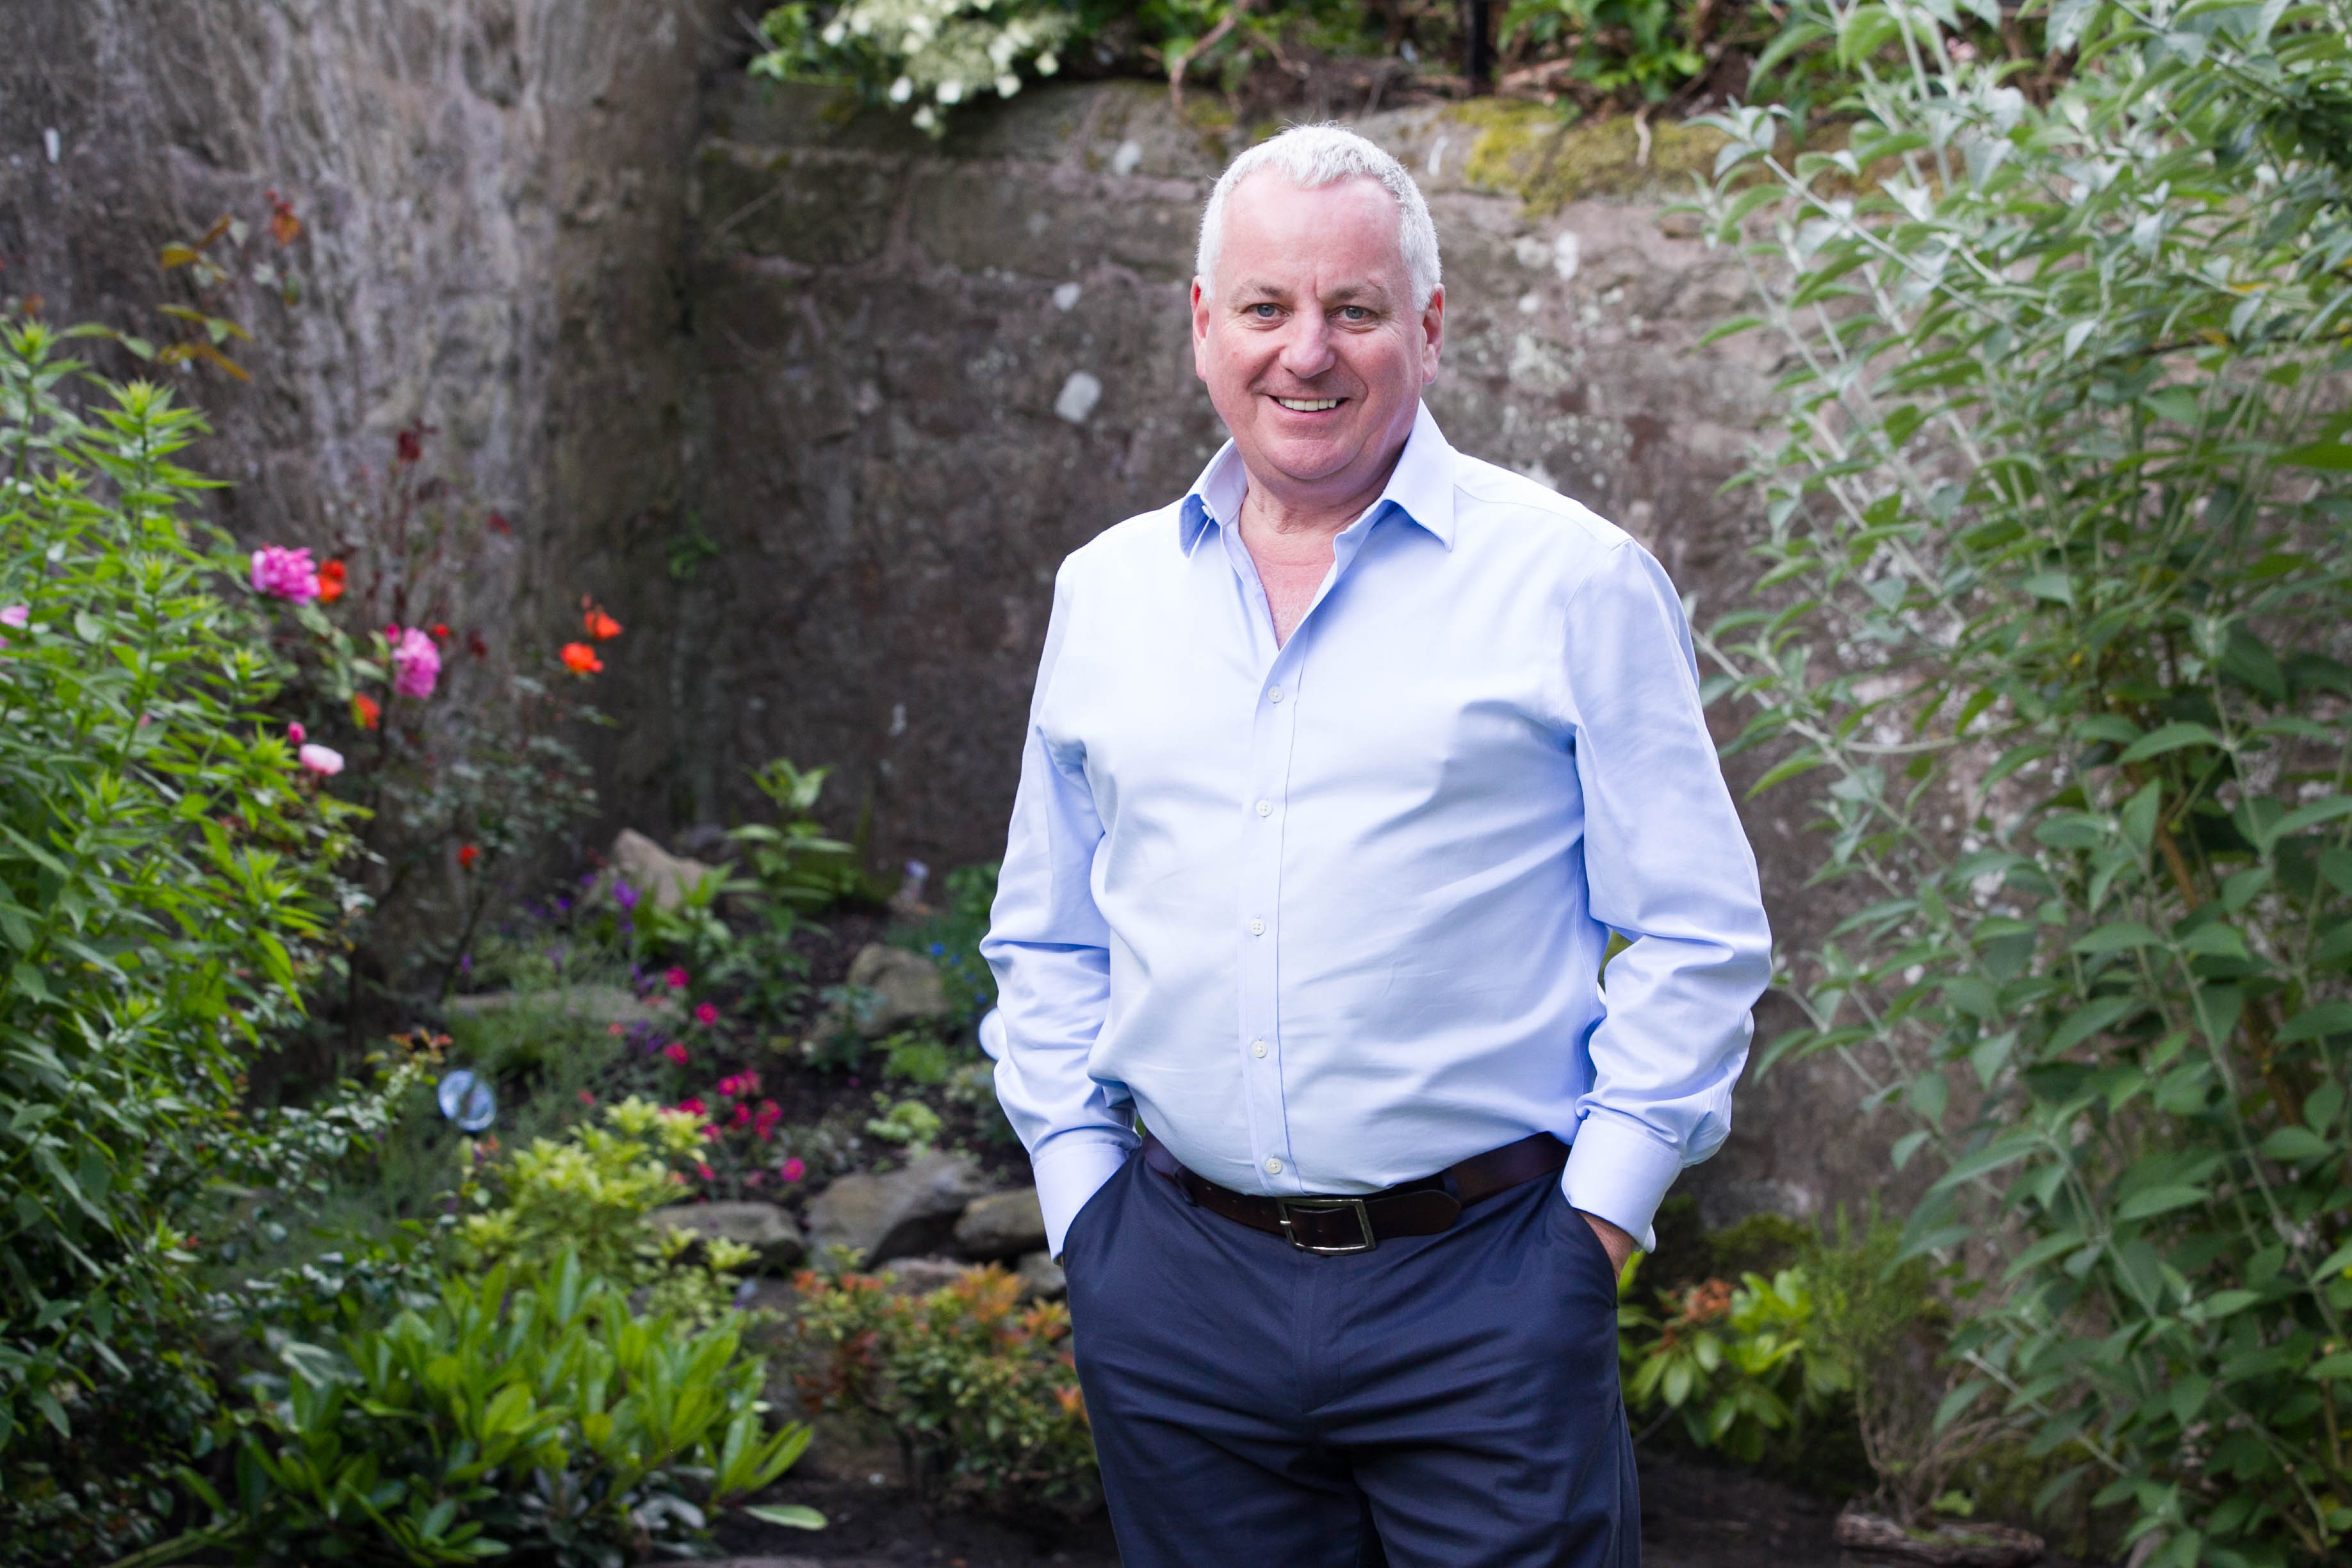 Former First Minister of Scotland Jack McConnell photographed at his home ahead of becoming Stirling University chancellor